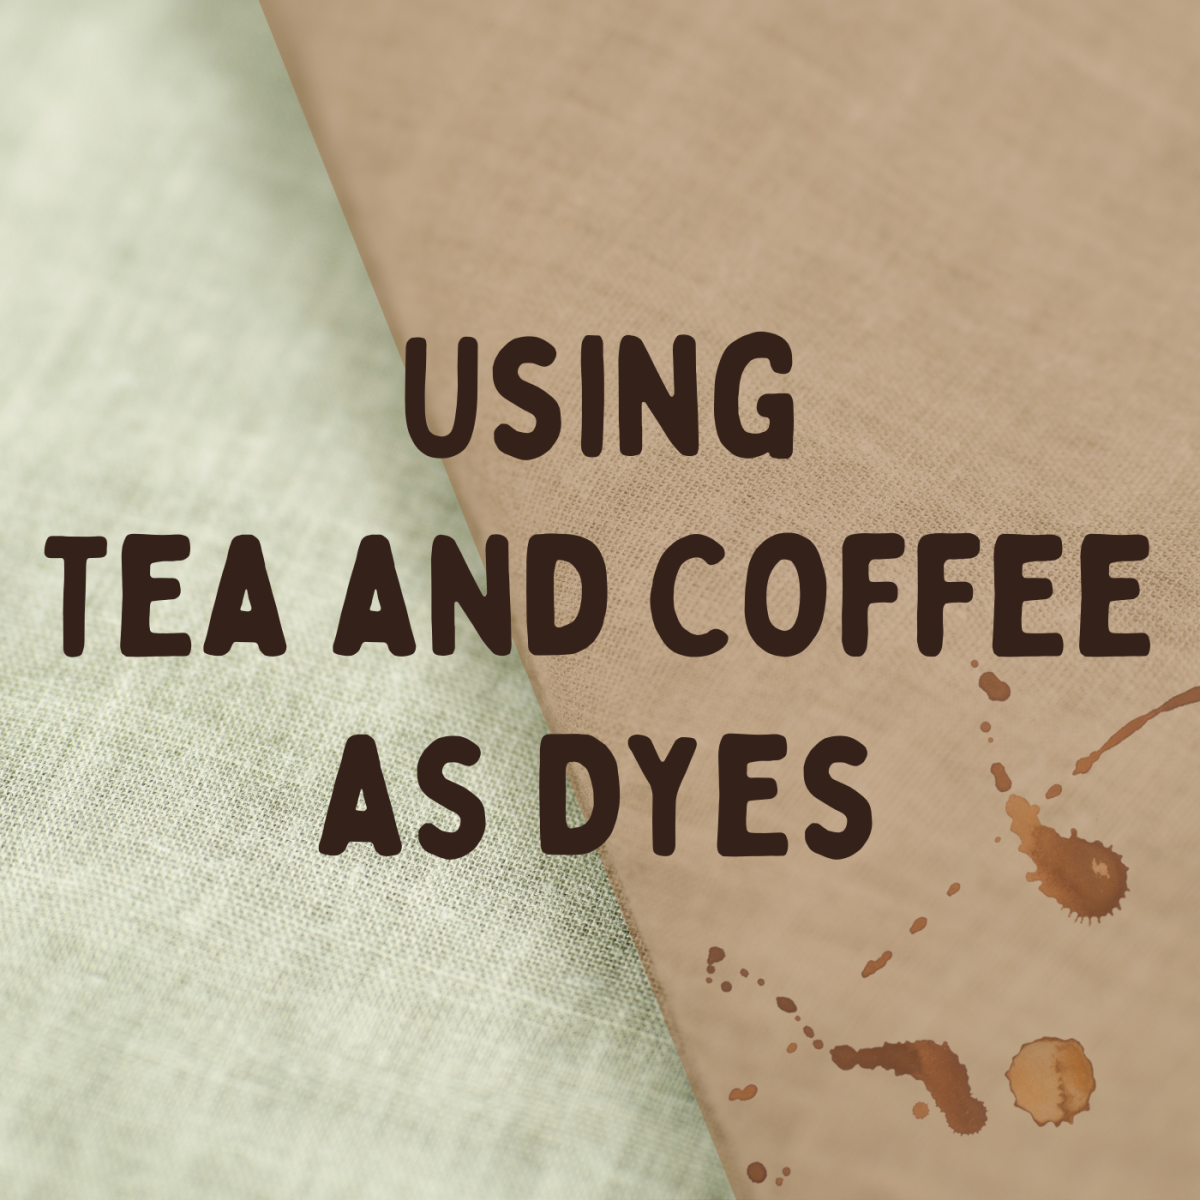 Did you know that coffee and tea make effective dyes and stains? Learn how to use these substances in your crafting.